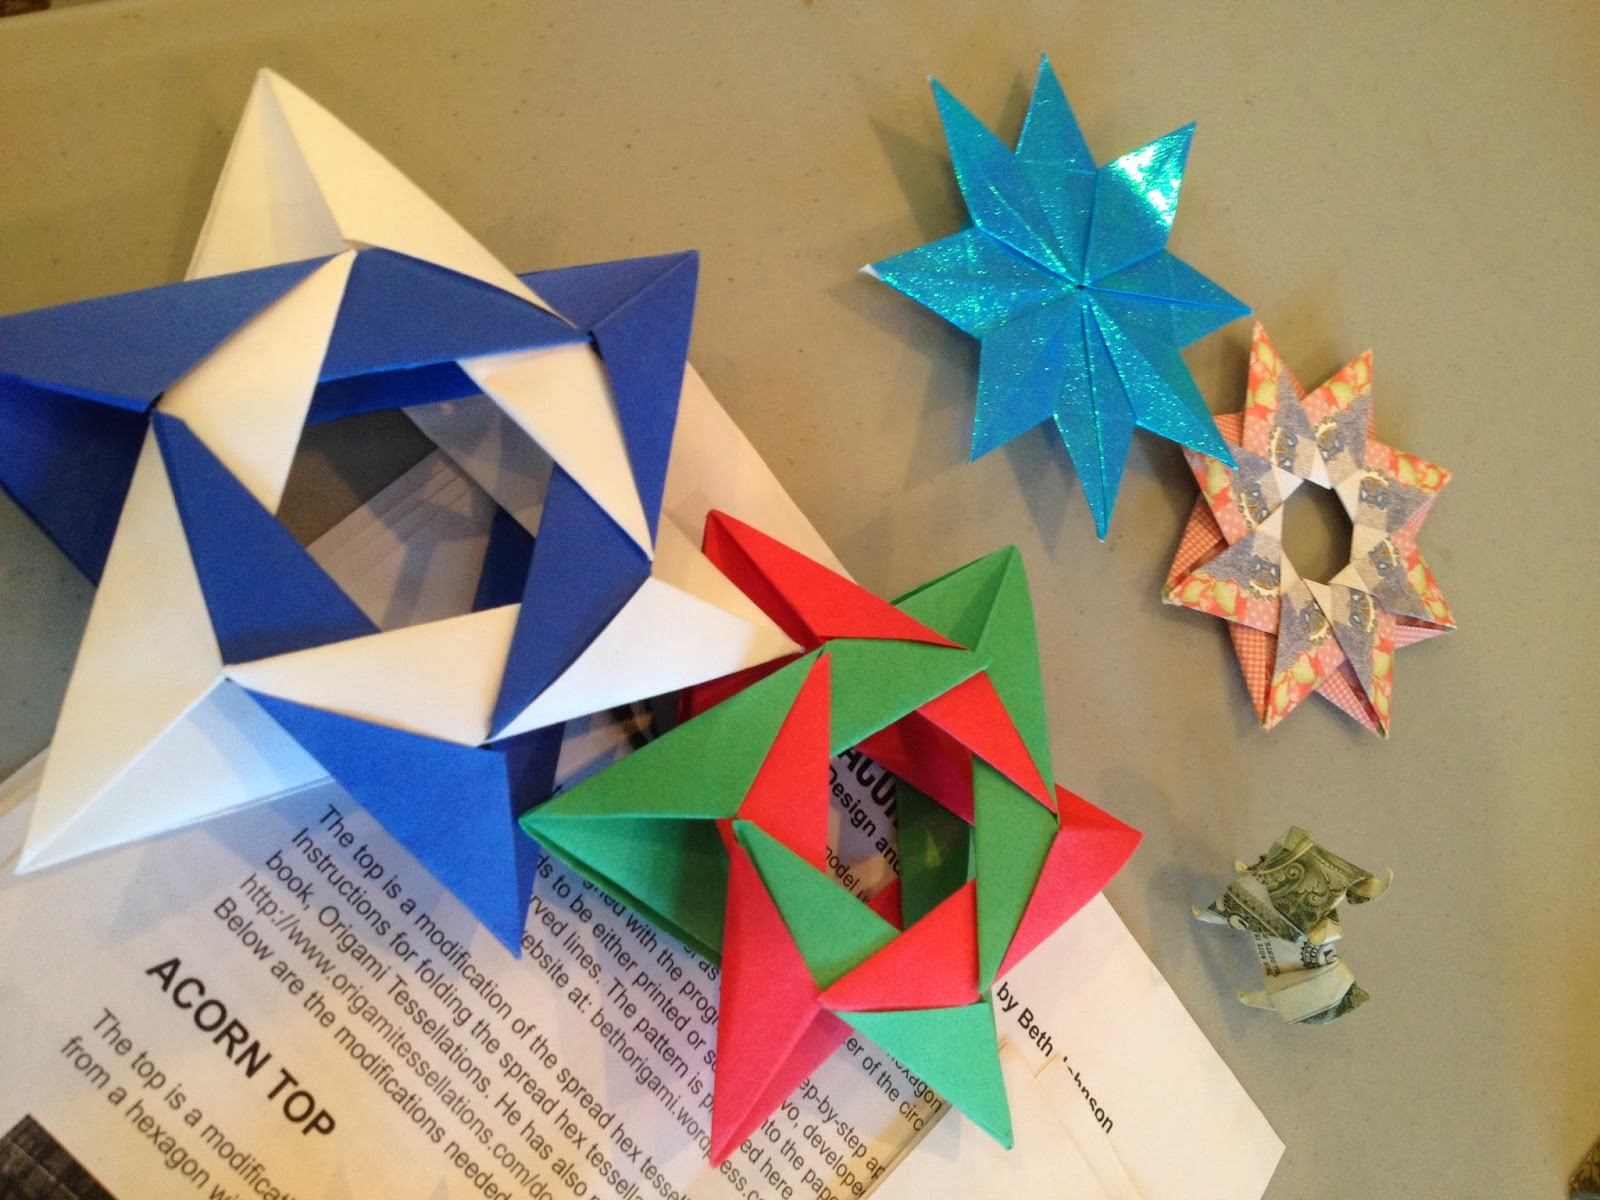 Have Paper Will Travel 1st Sunday At Martis Origami Fun In Garden Star Wars Diagrams And Crease Patterns Starwarigami Sorry Im Not Posting Much The Way Of A Description Account What We Did Either Just Shortage On Time Allowed Only An Hour Library